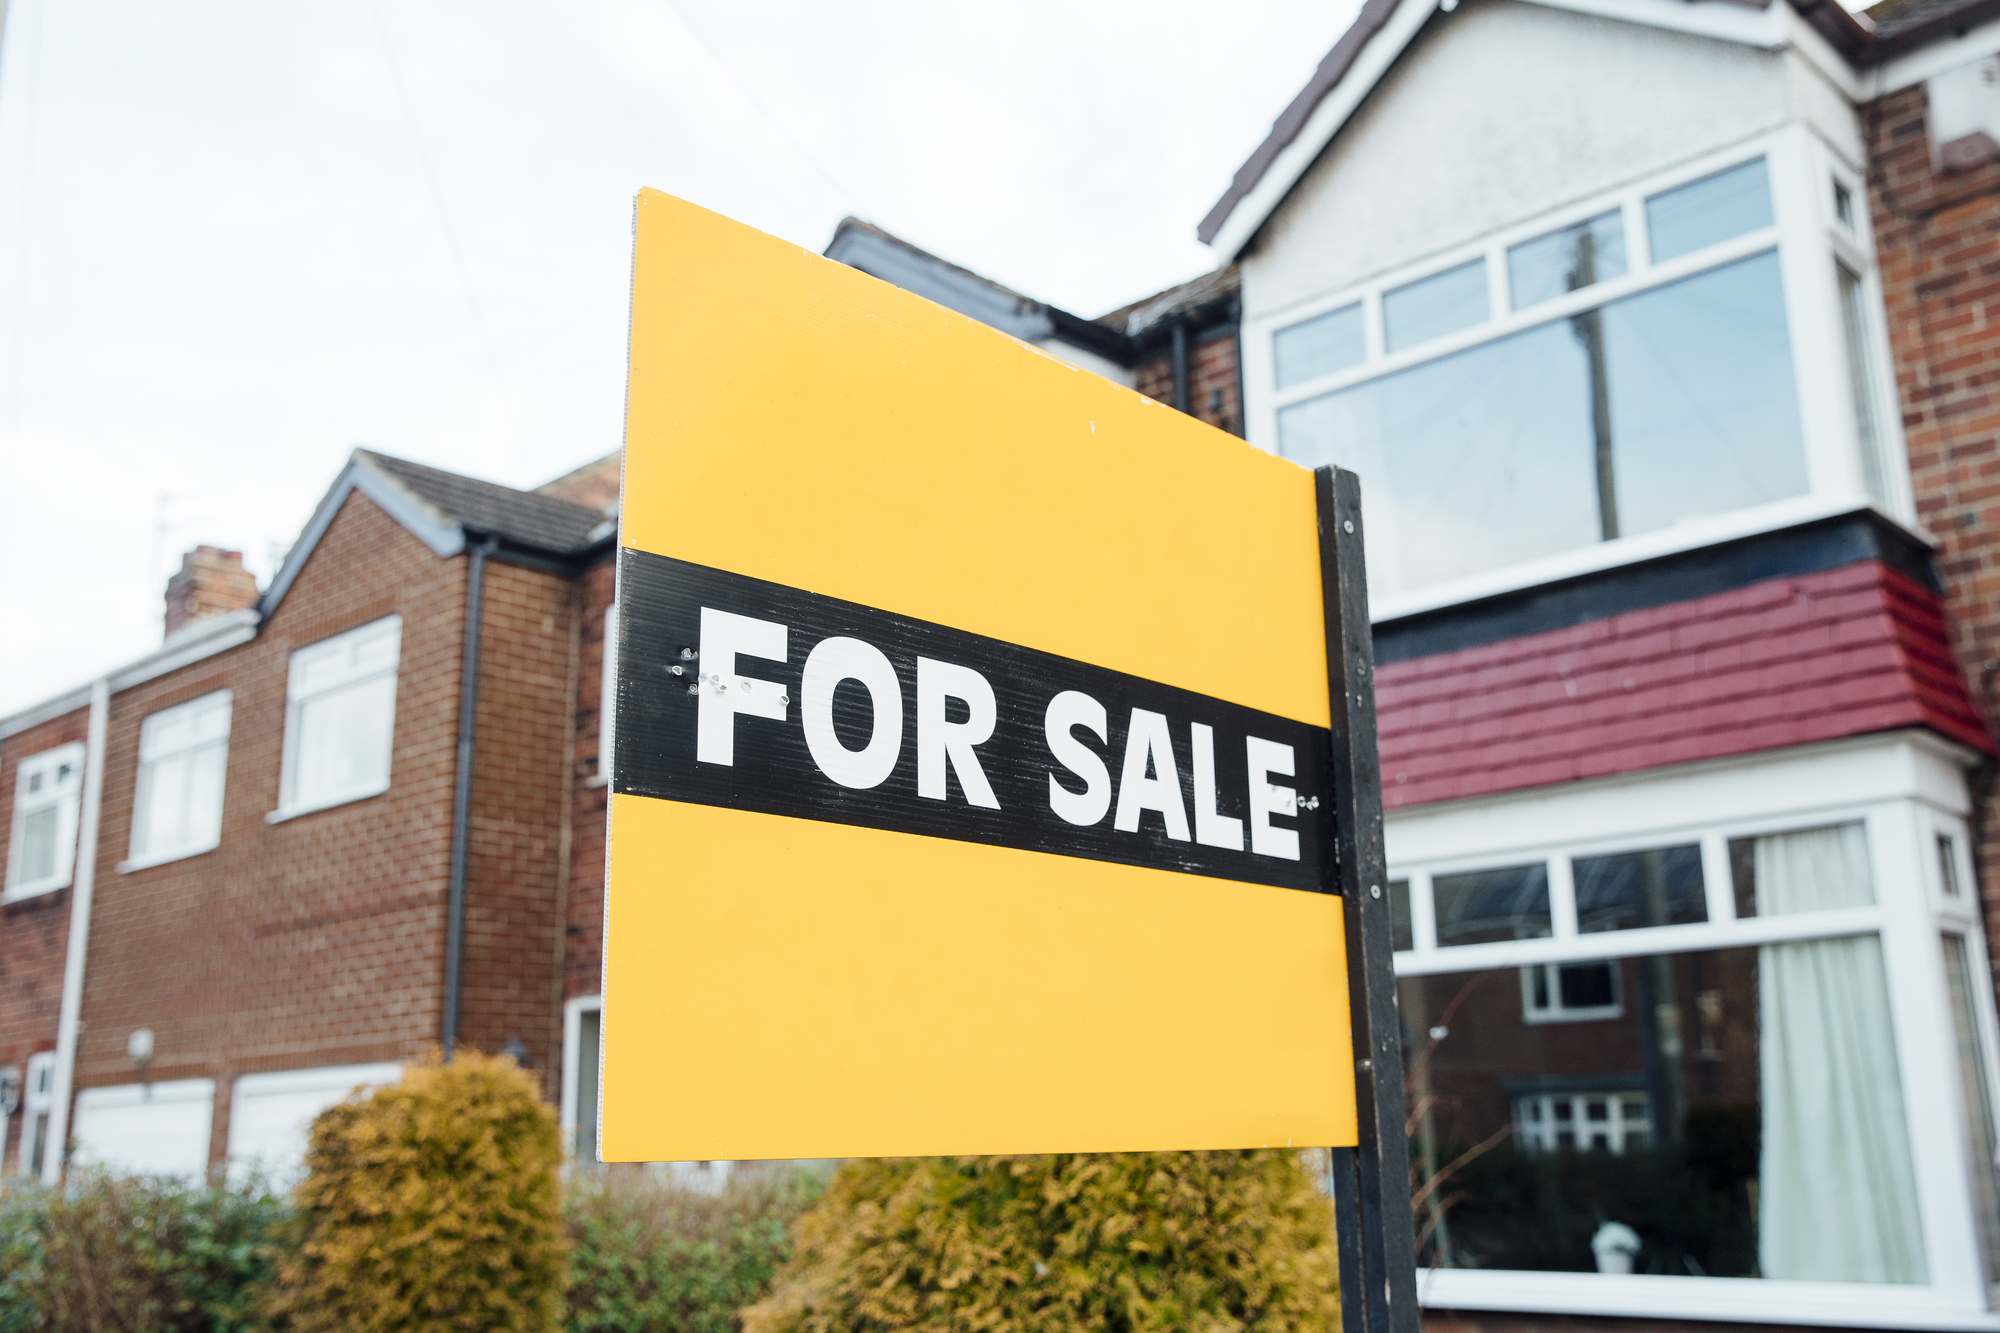 Discover the average house prices in Old Trafford Manchester